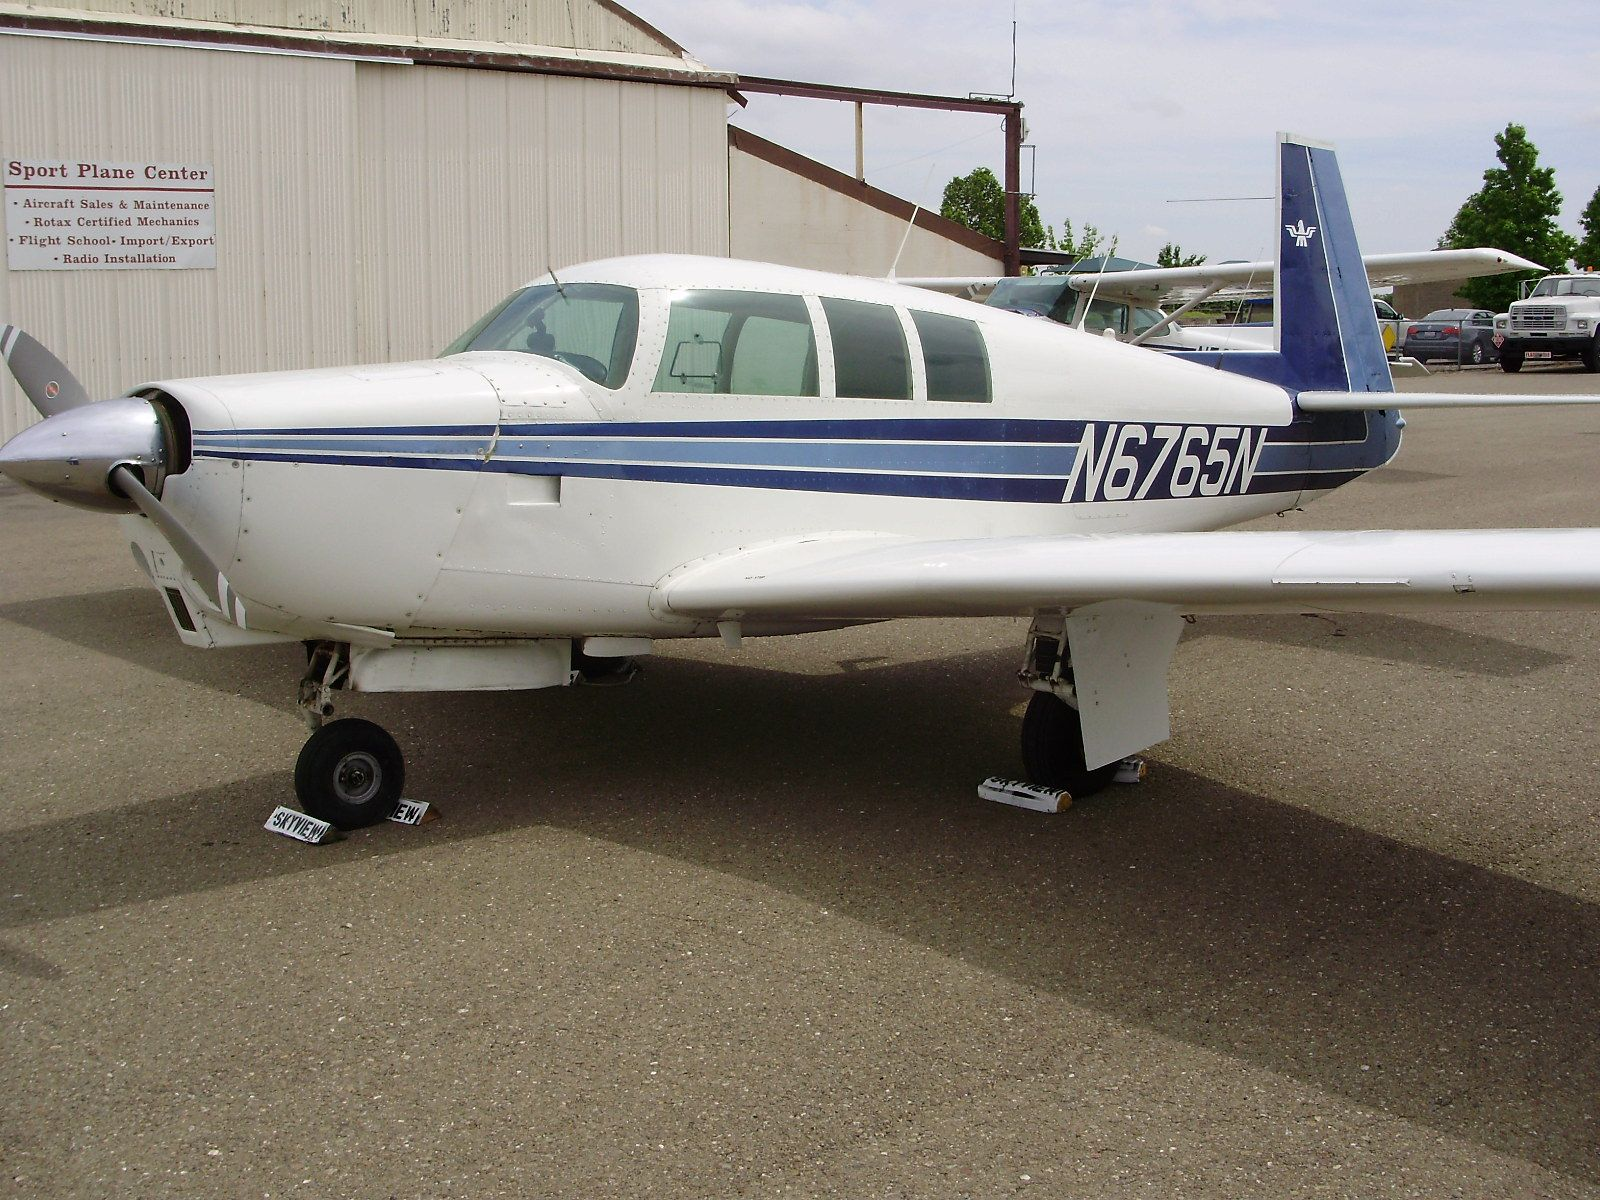 1968 Mooney M20g For Sale In The United States Www Airplanemart